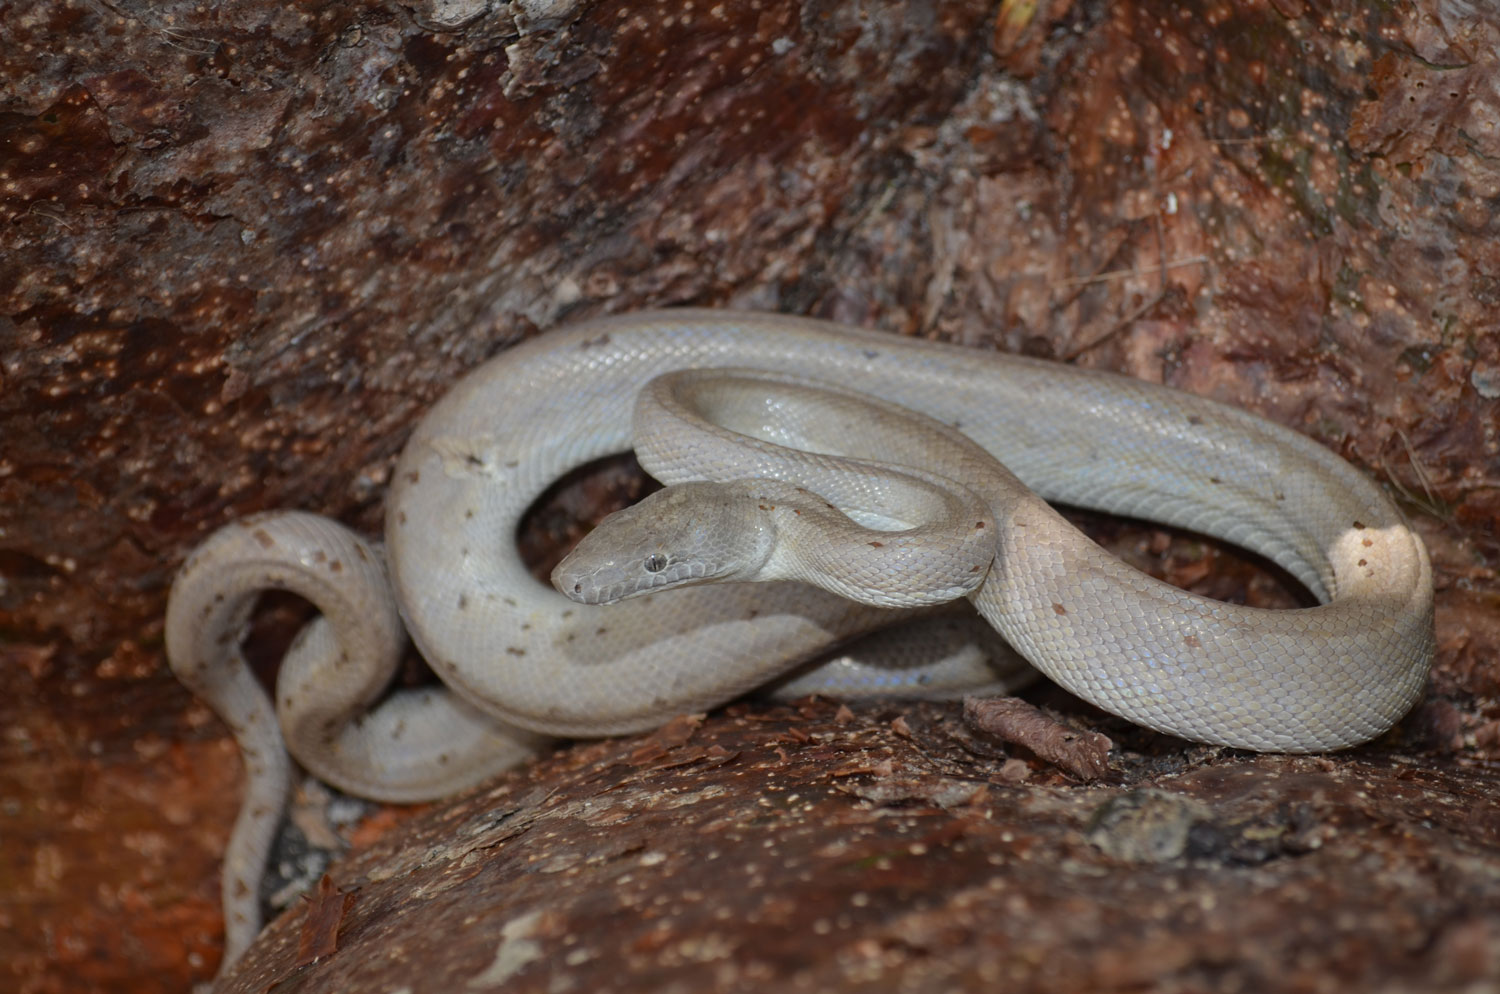 Asheville professor and Smokies researcher discovers four new snake species in six years